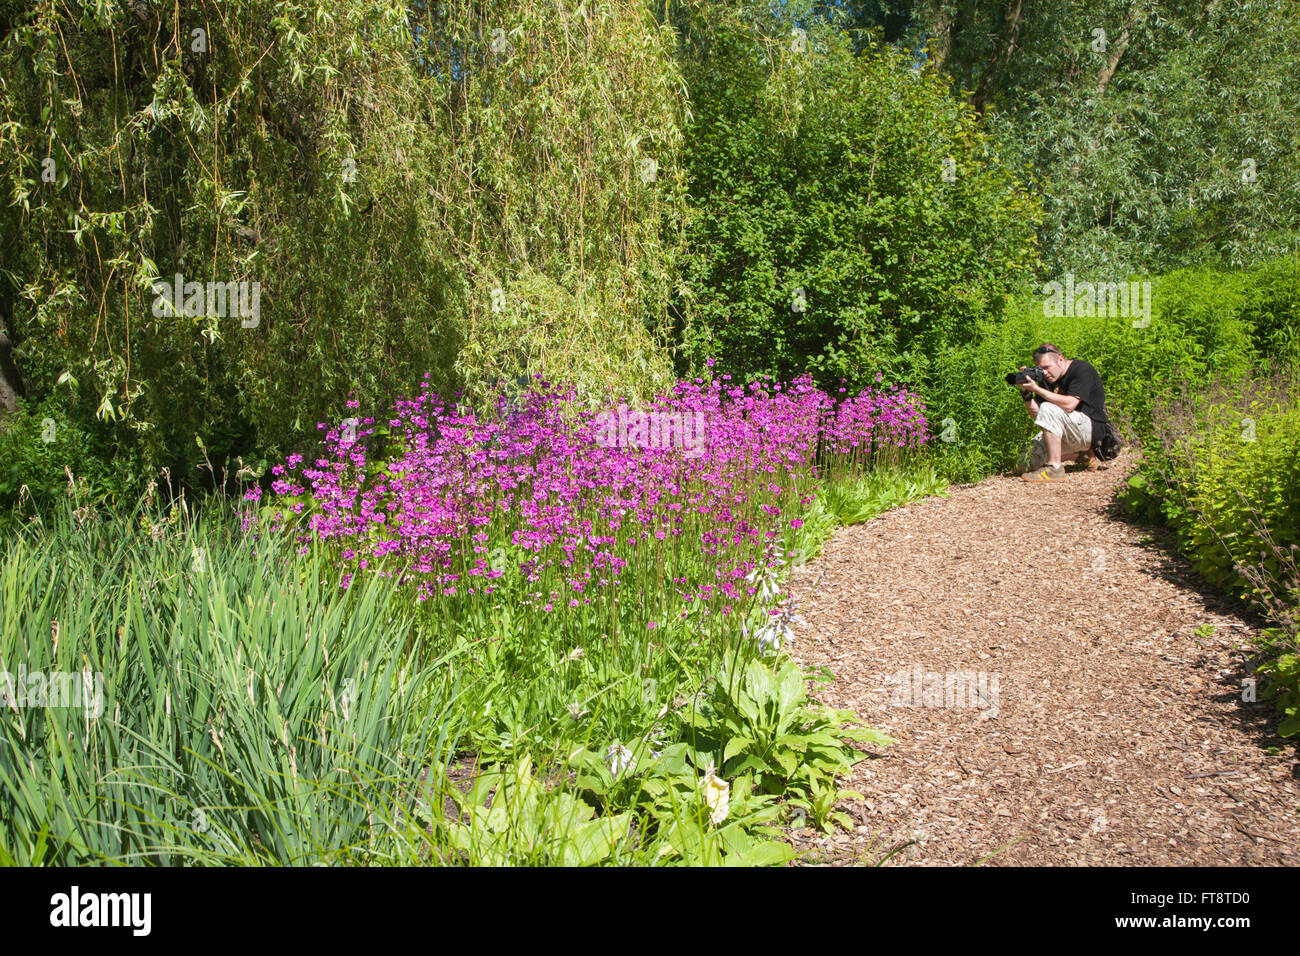 Edinburgh, City of Edinburgh, Scotland. Man photographing colourful blooms in the Royal Botanic Garden. - Stock Image